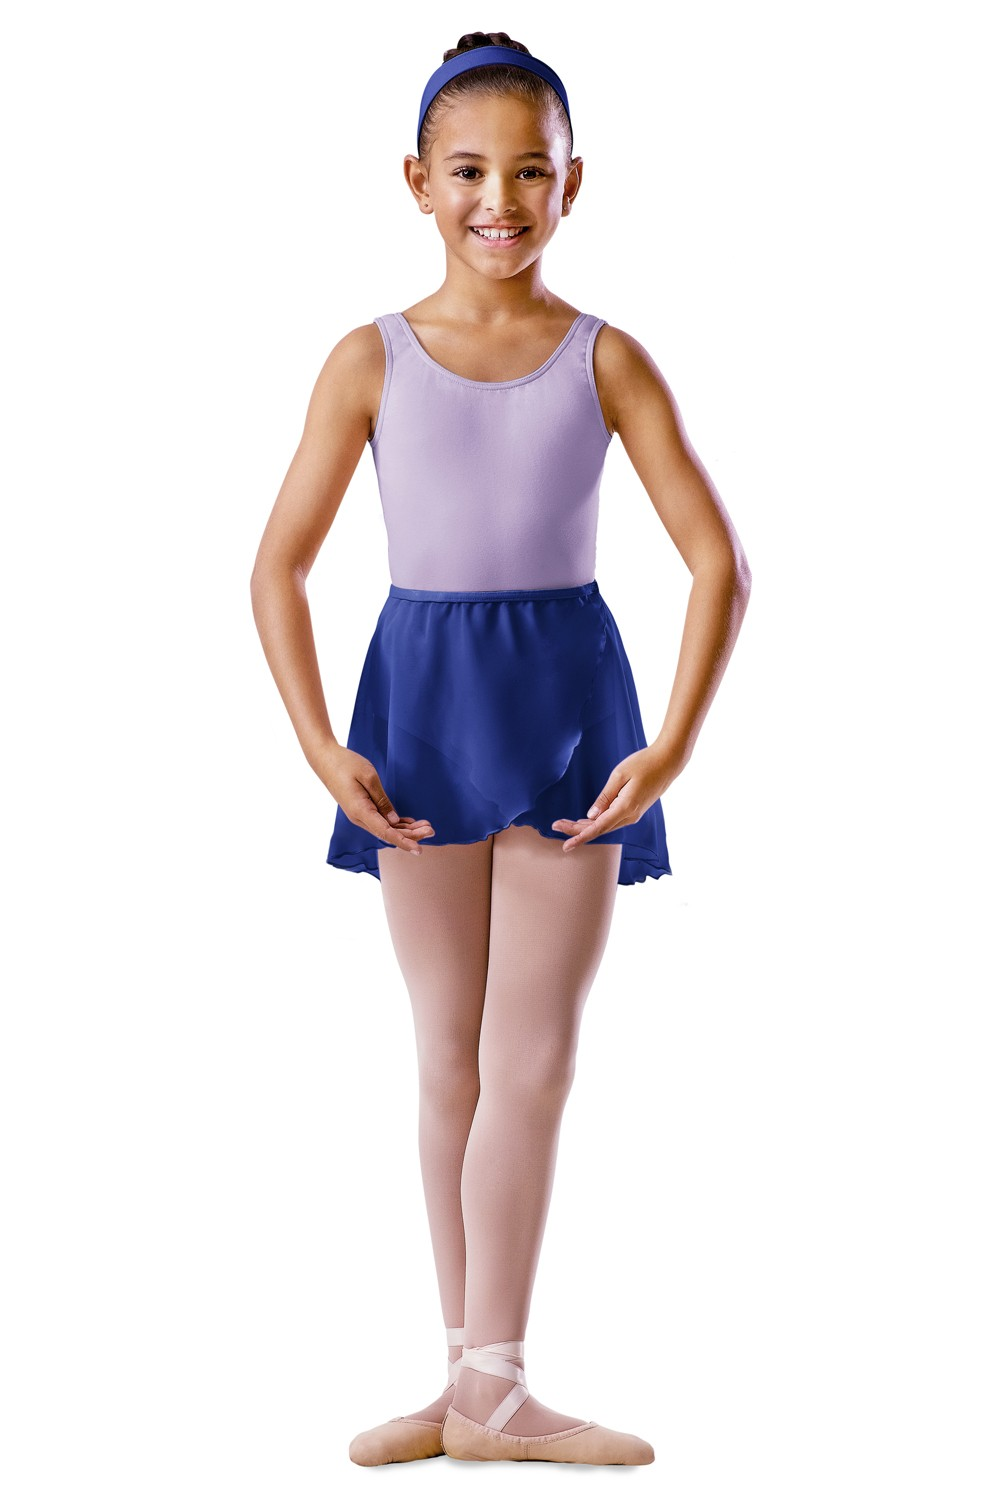 Childrens Cross Over Skirt Children's Dance Uniforms